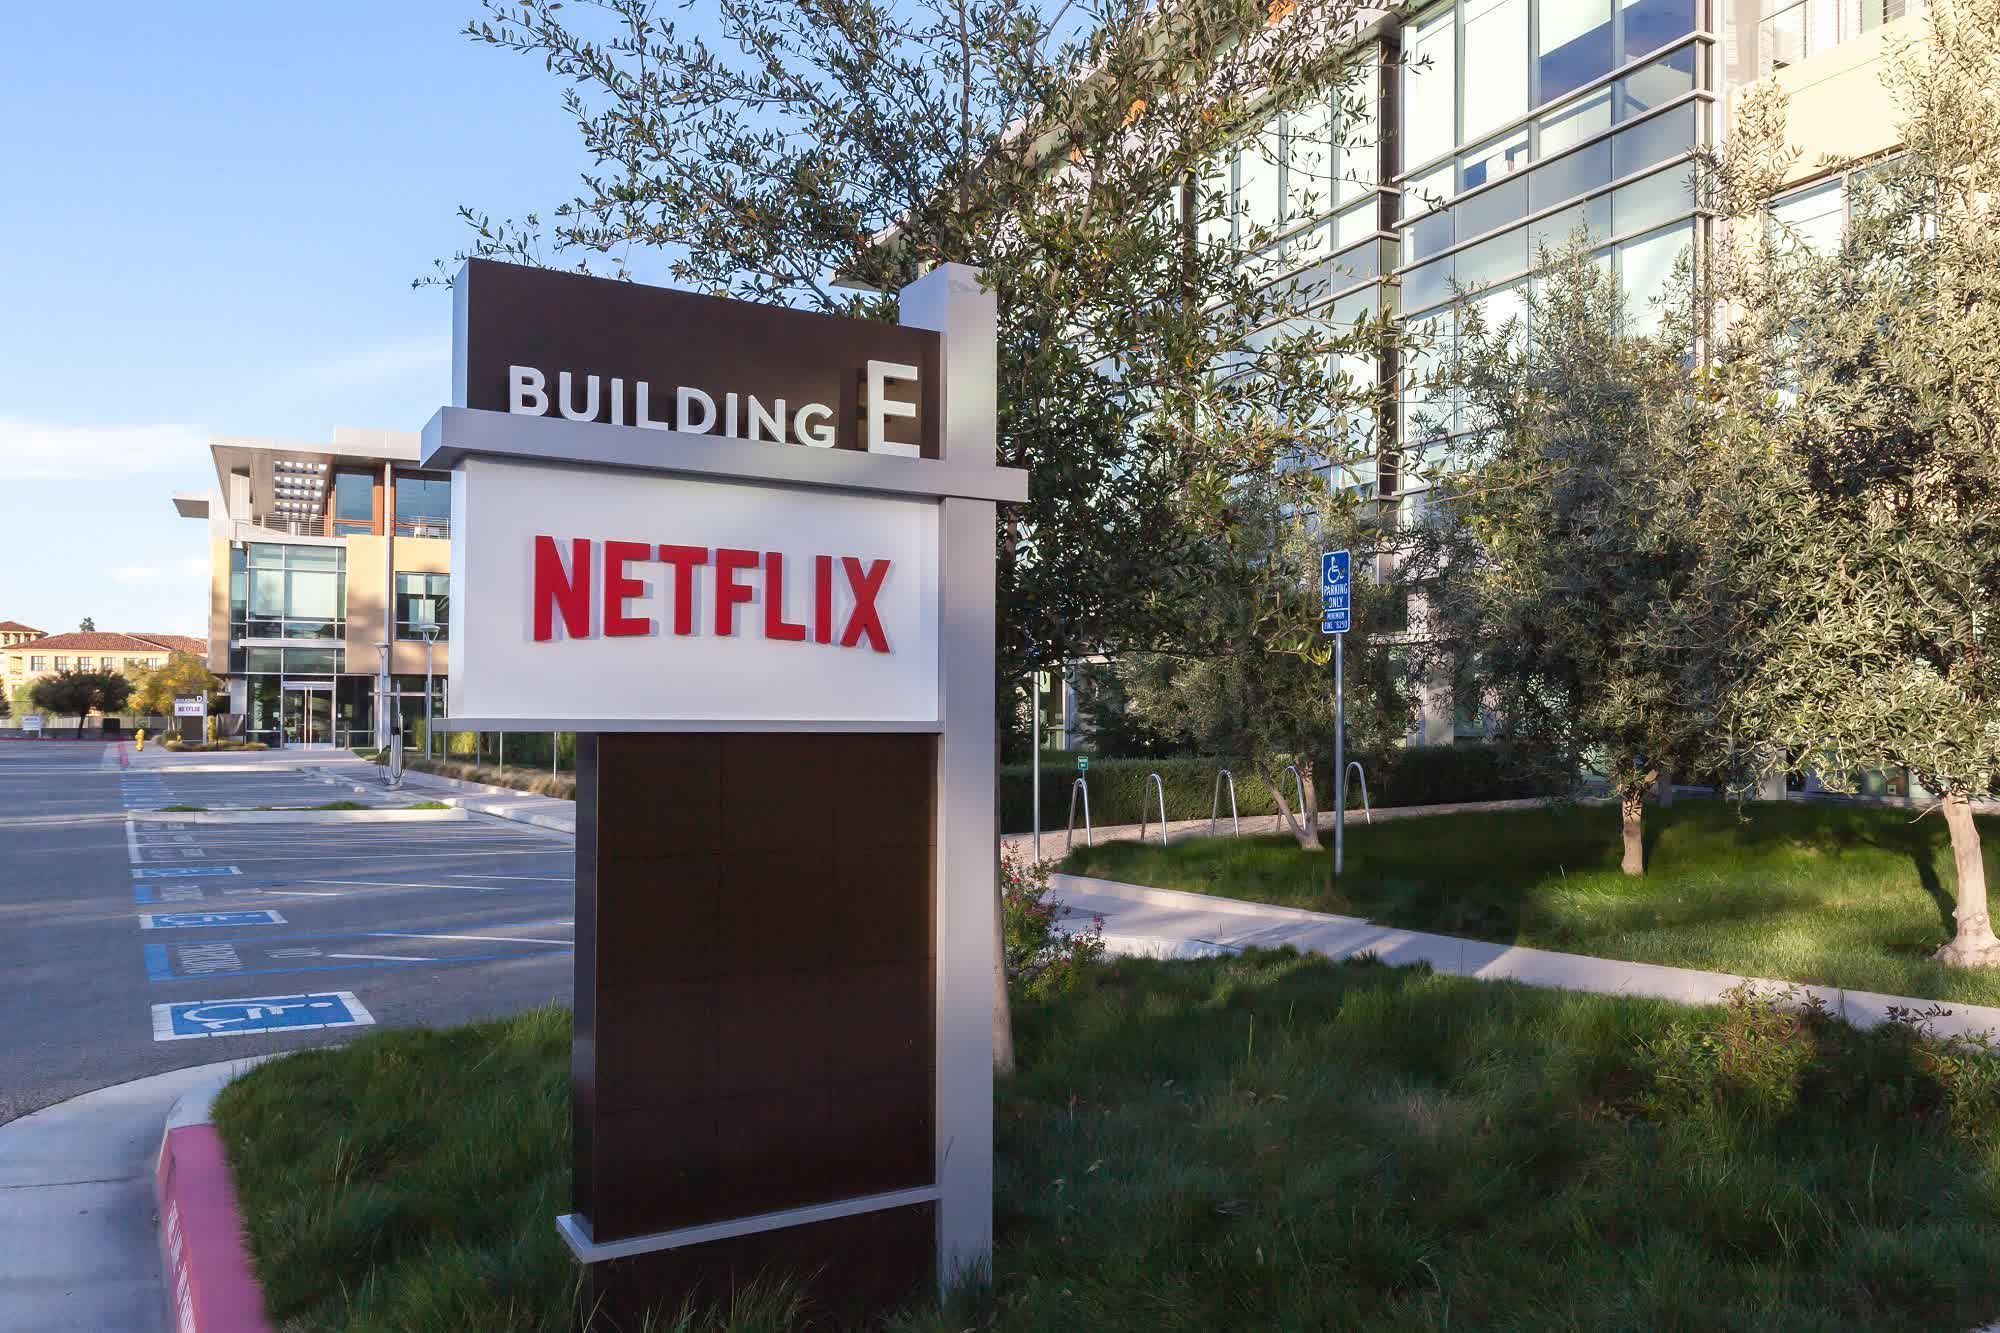 Netflix boss says staff can return to office when the majority are vaccinated